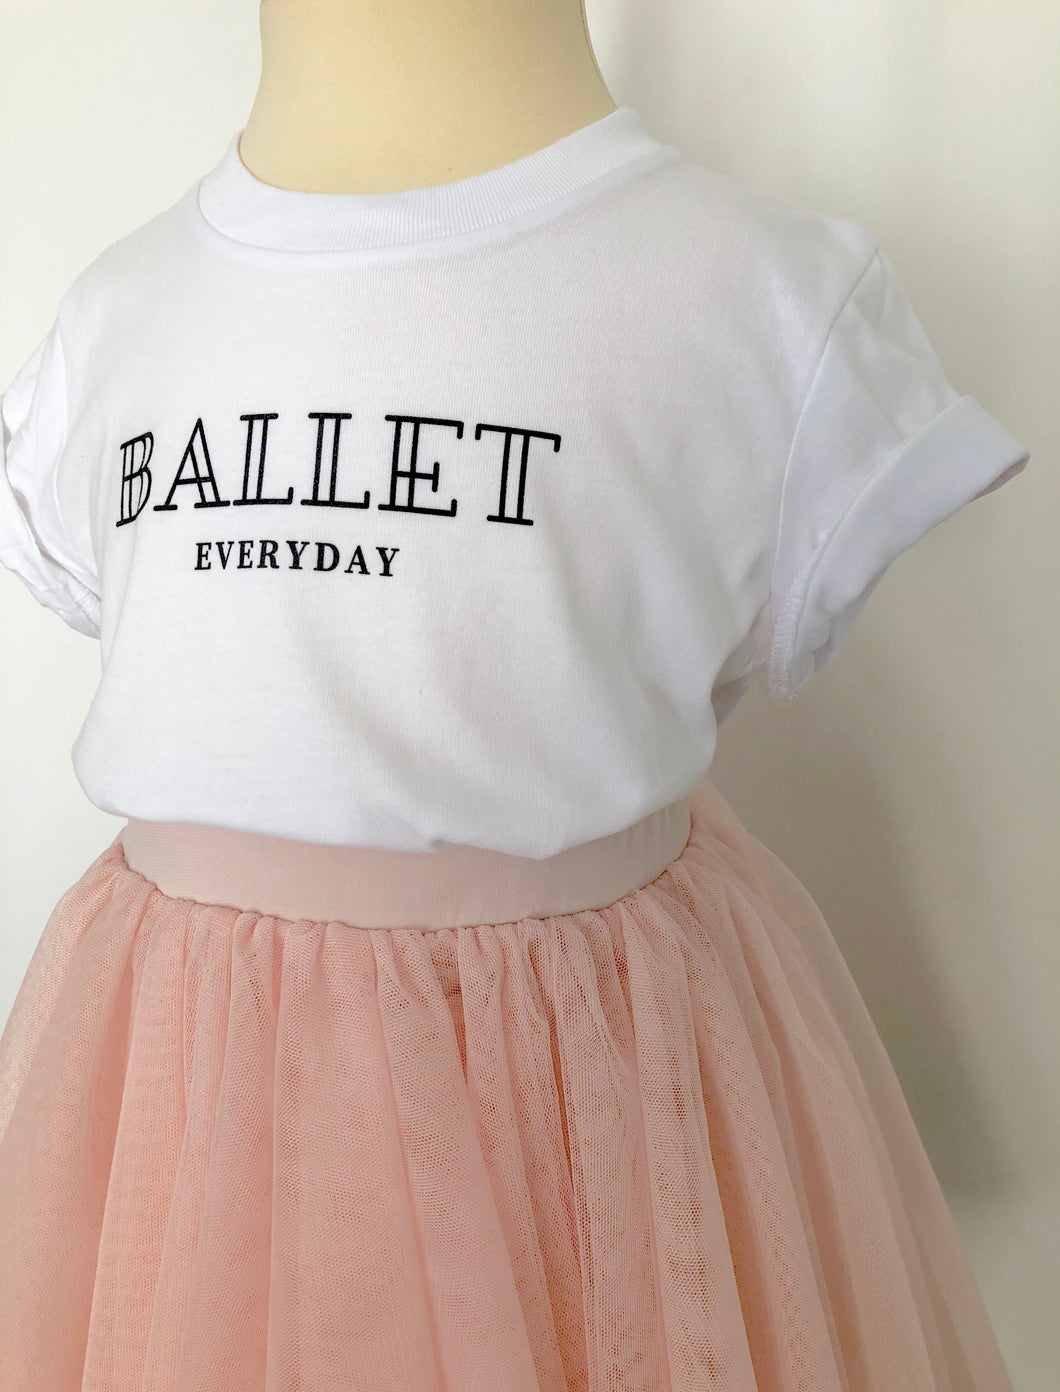 Ballet everyday girls slogan t-shirt